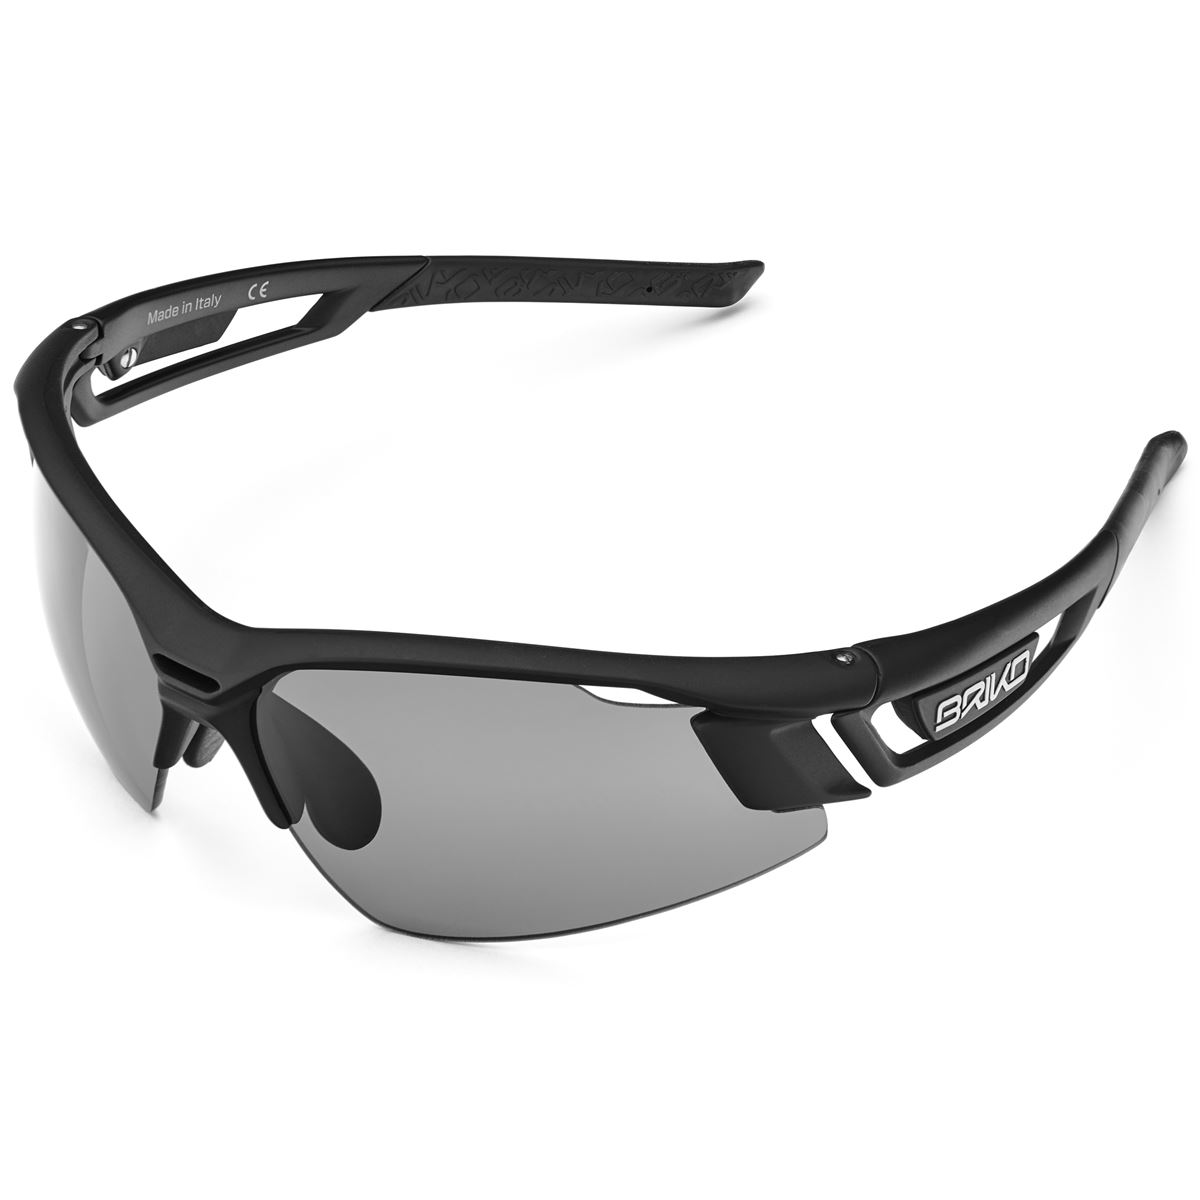 Briko GLASSES URAGANO POLAR Man Woman CYCLING MOUNTAIN BIKE Sunglasses